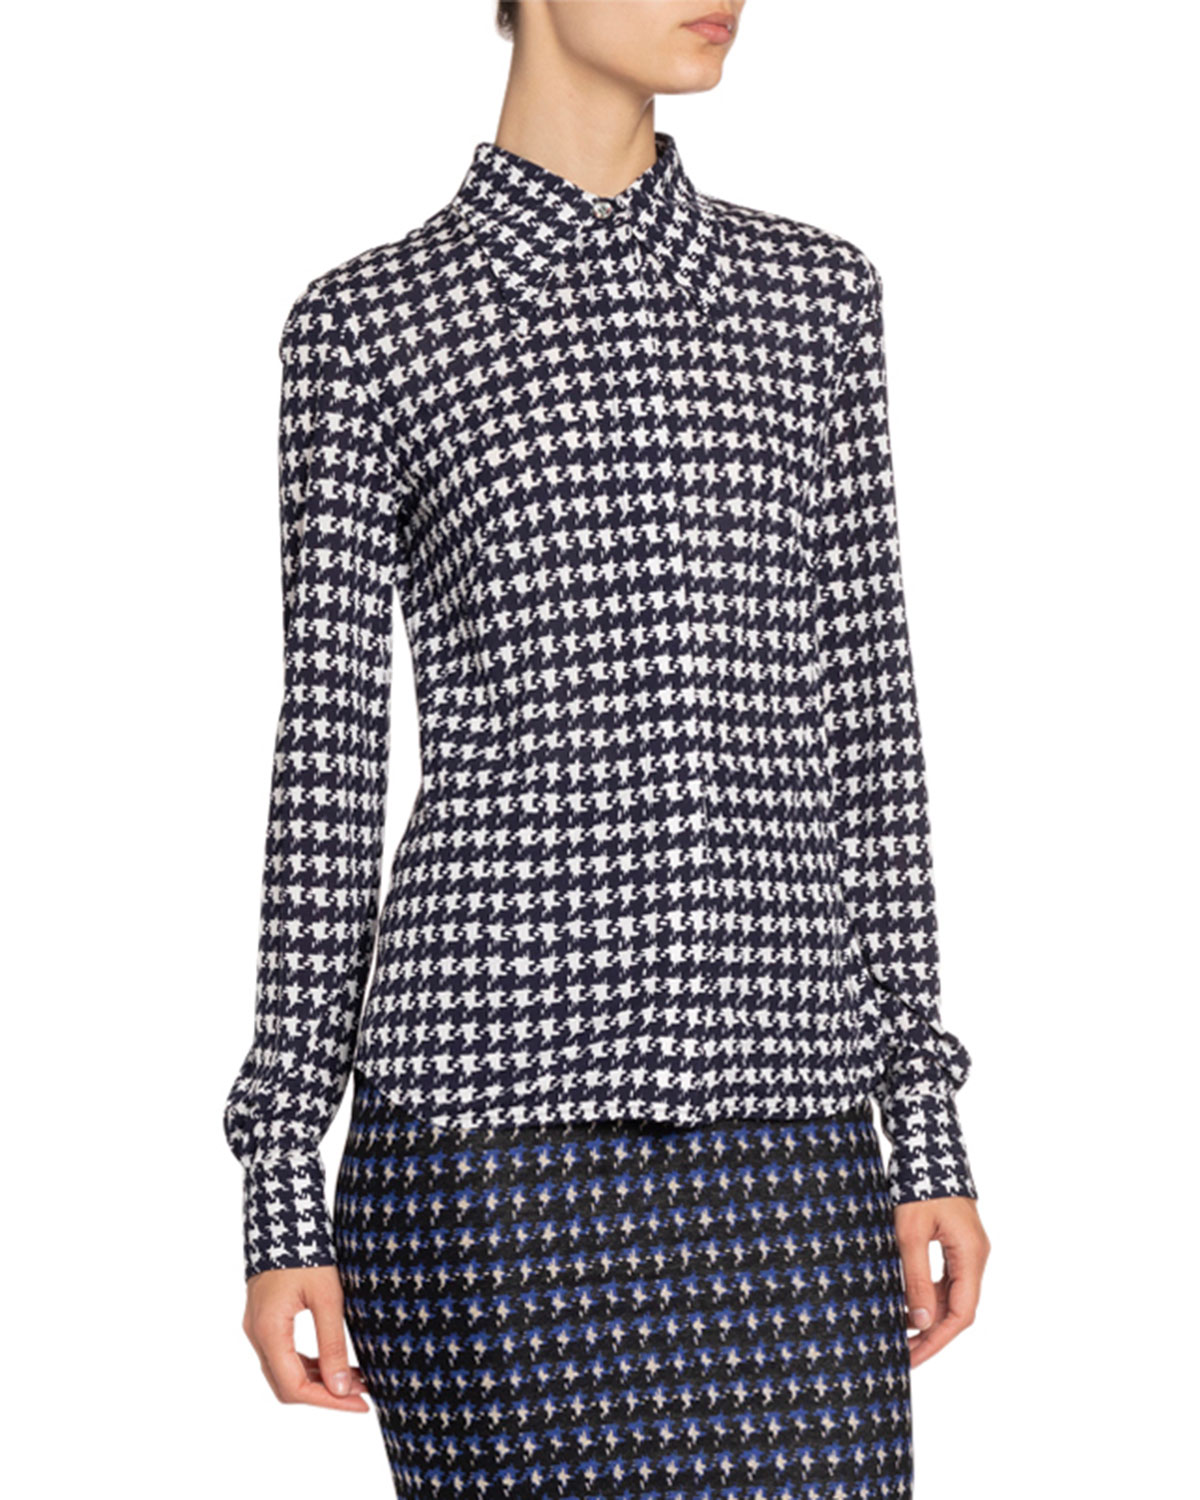 Victoria Beckham Tops HOUNDSTOOTH-PRINT JERSEY BUTTON-FRONT TOP